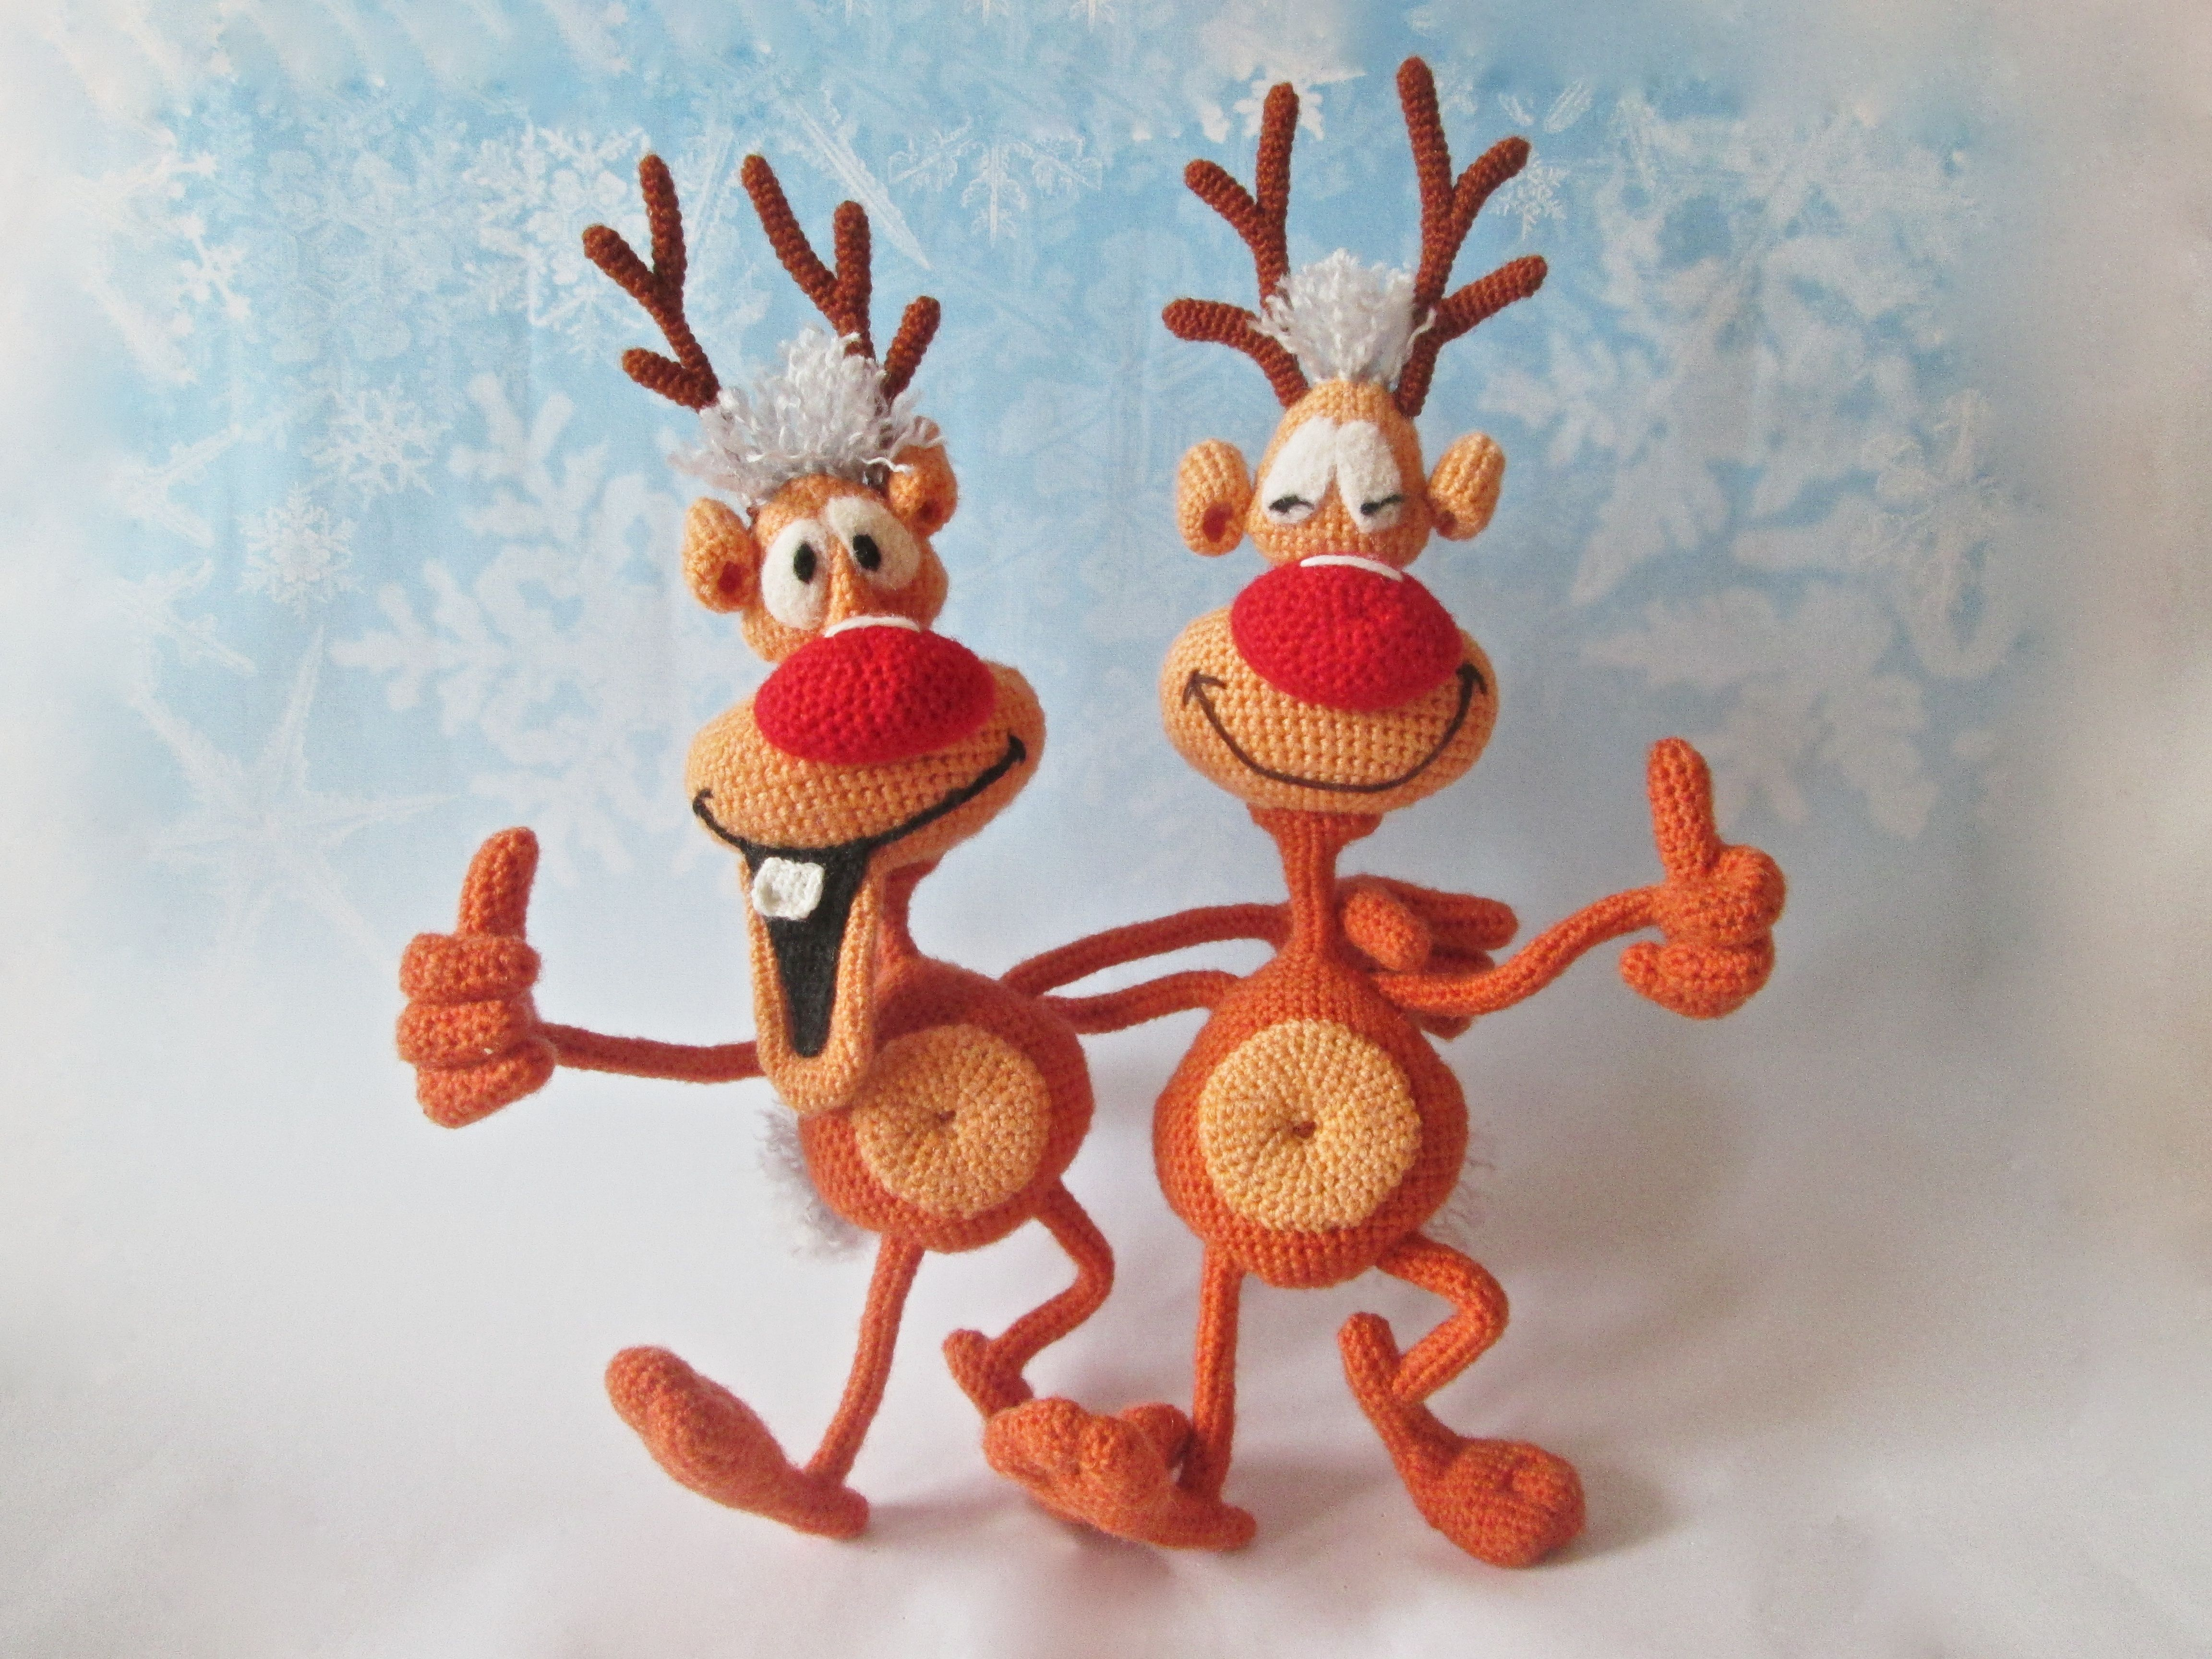 035 reindeer rudolf toy ravelry pattern by littleowlshut 035 reindeer rudolf toy ravelry pattern by littleowlshut bankloansurffo Choice Image